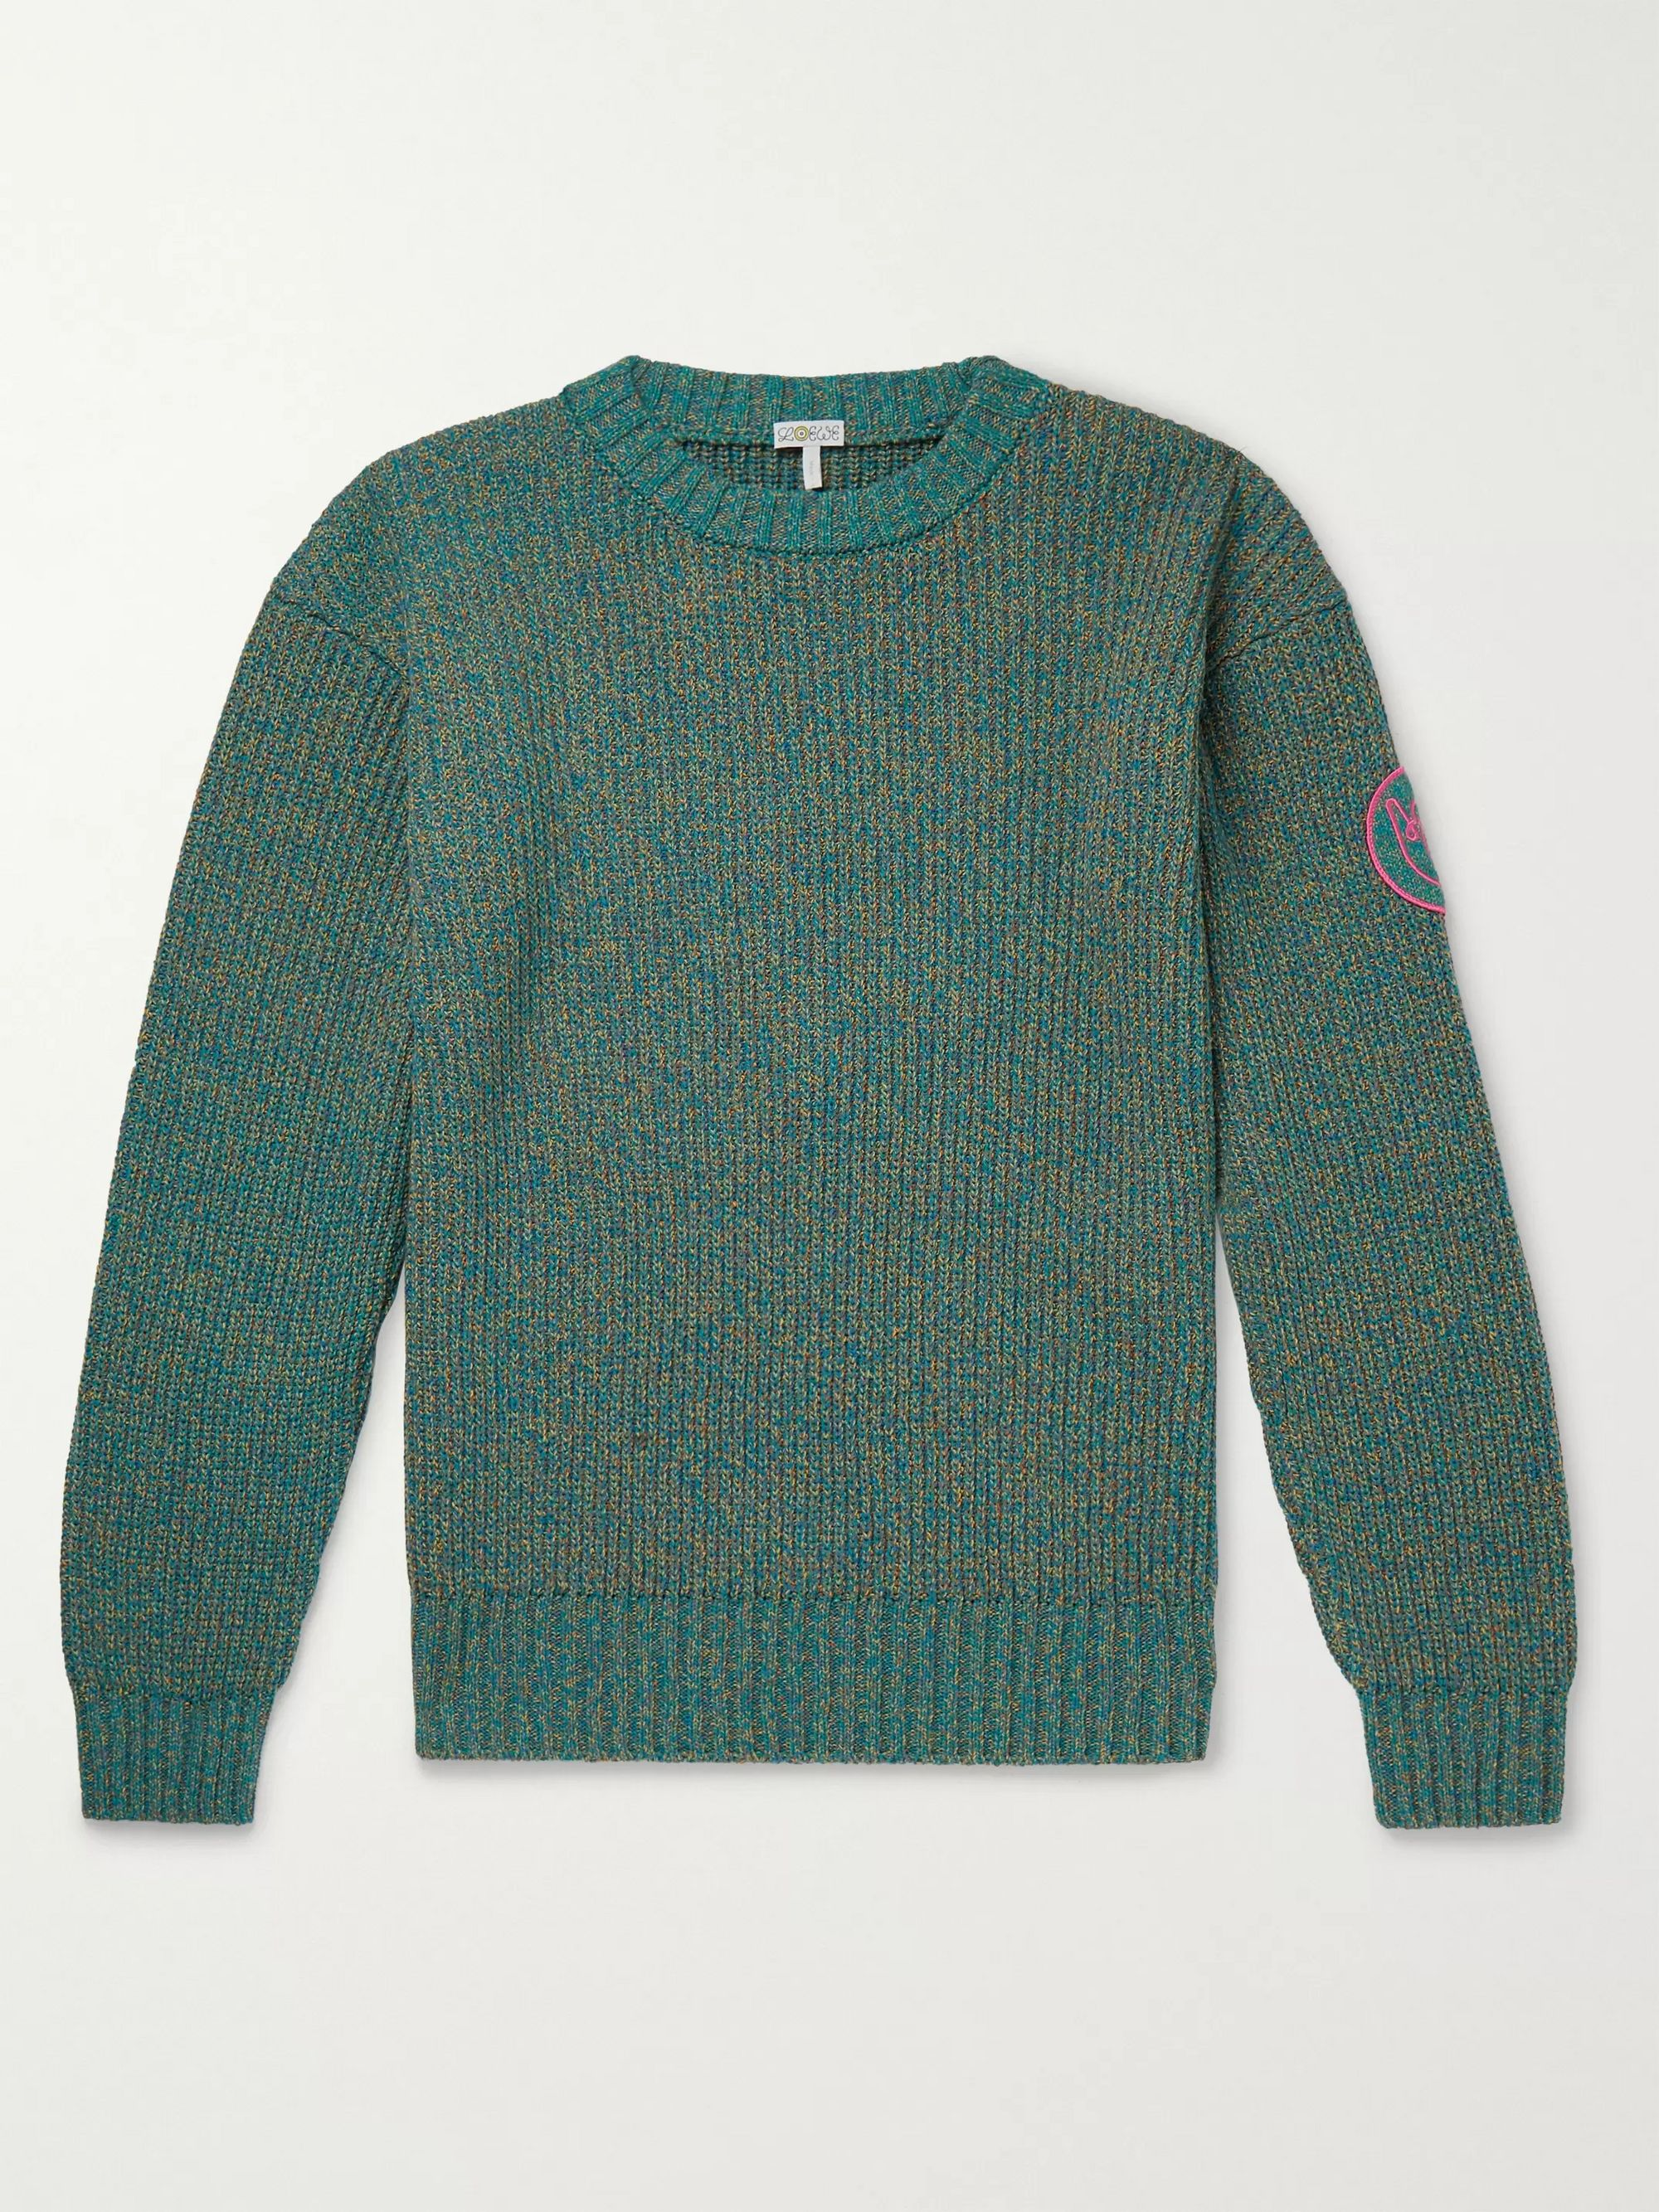 Loewe Eye/LOEWE/Nature Logo-Appliquéd Mélange Cotton-Blend Sweater